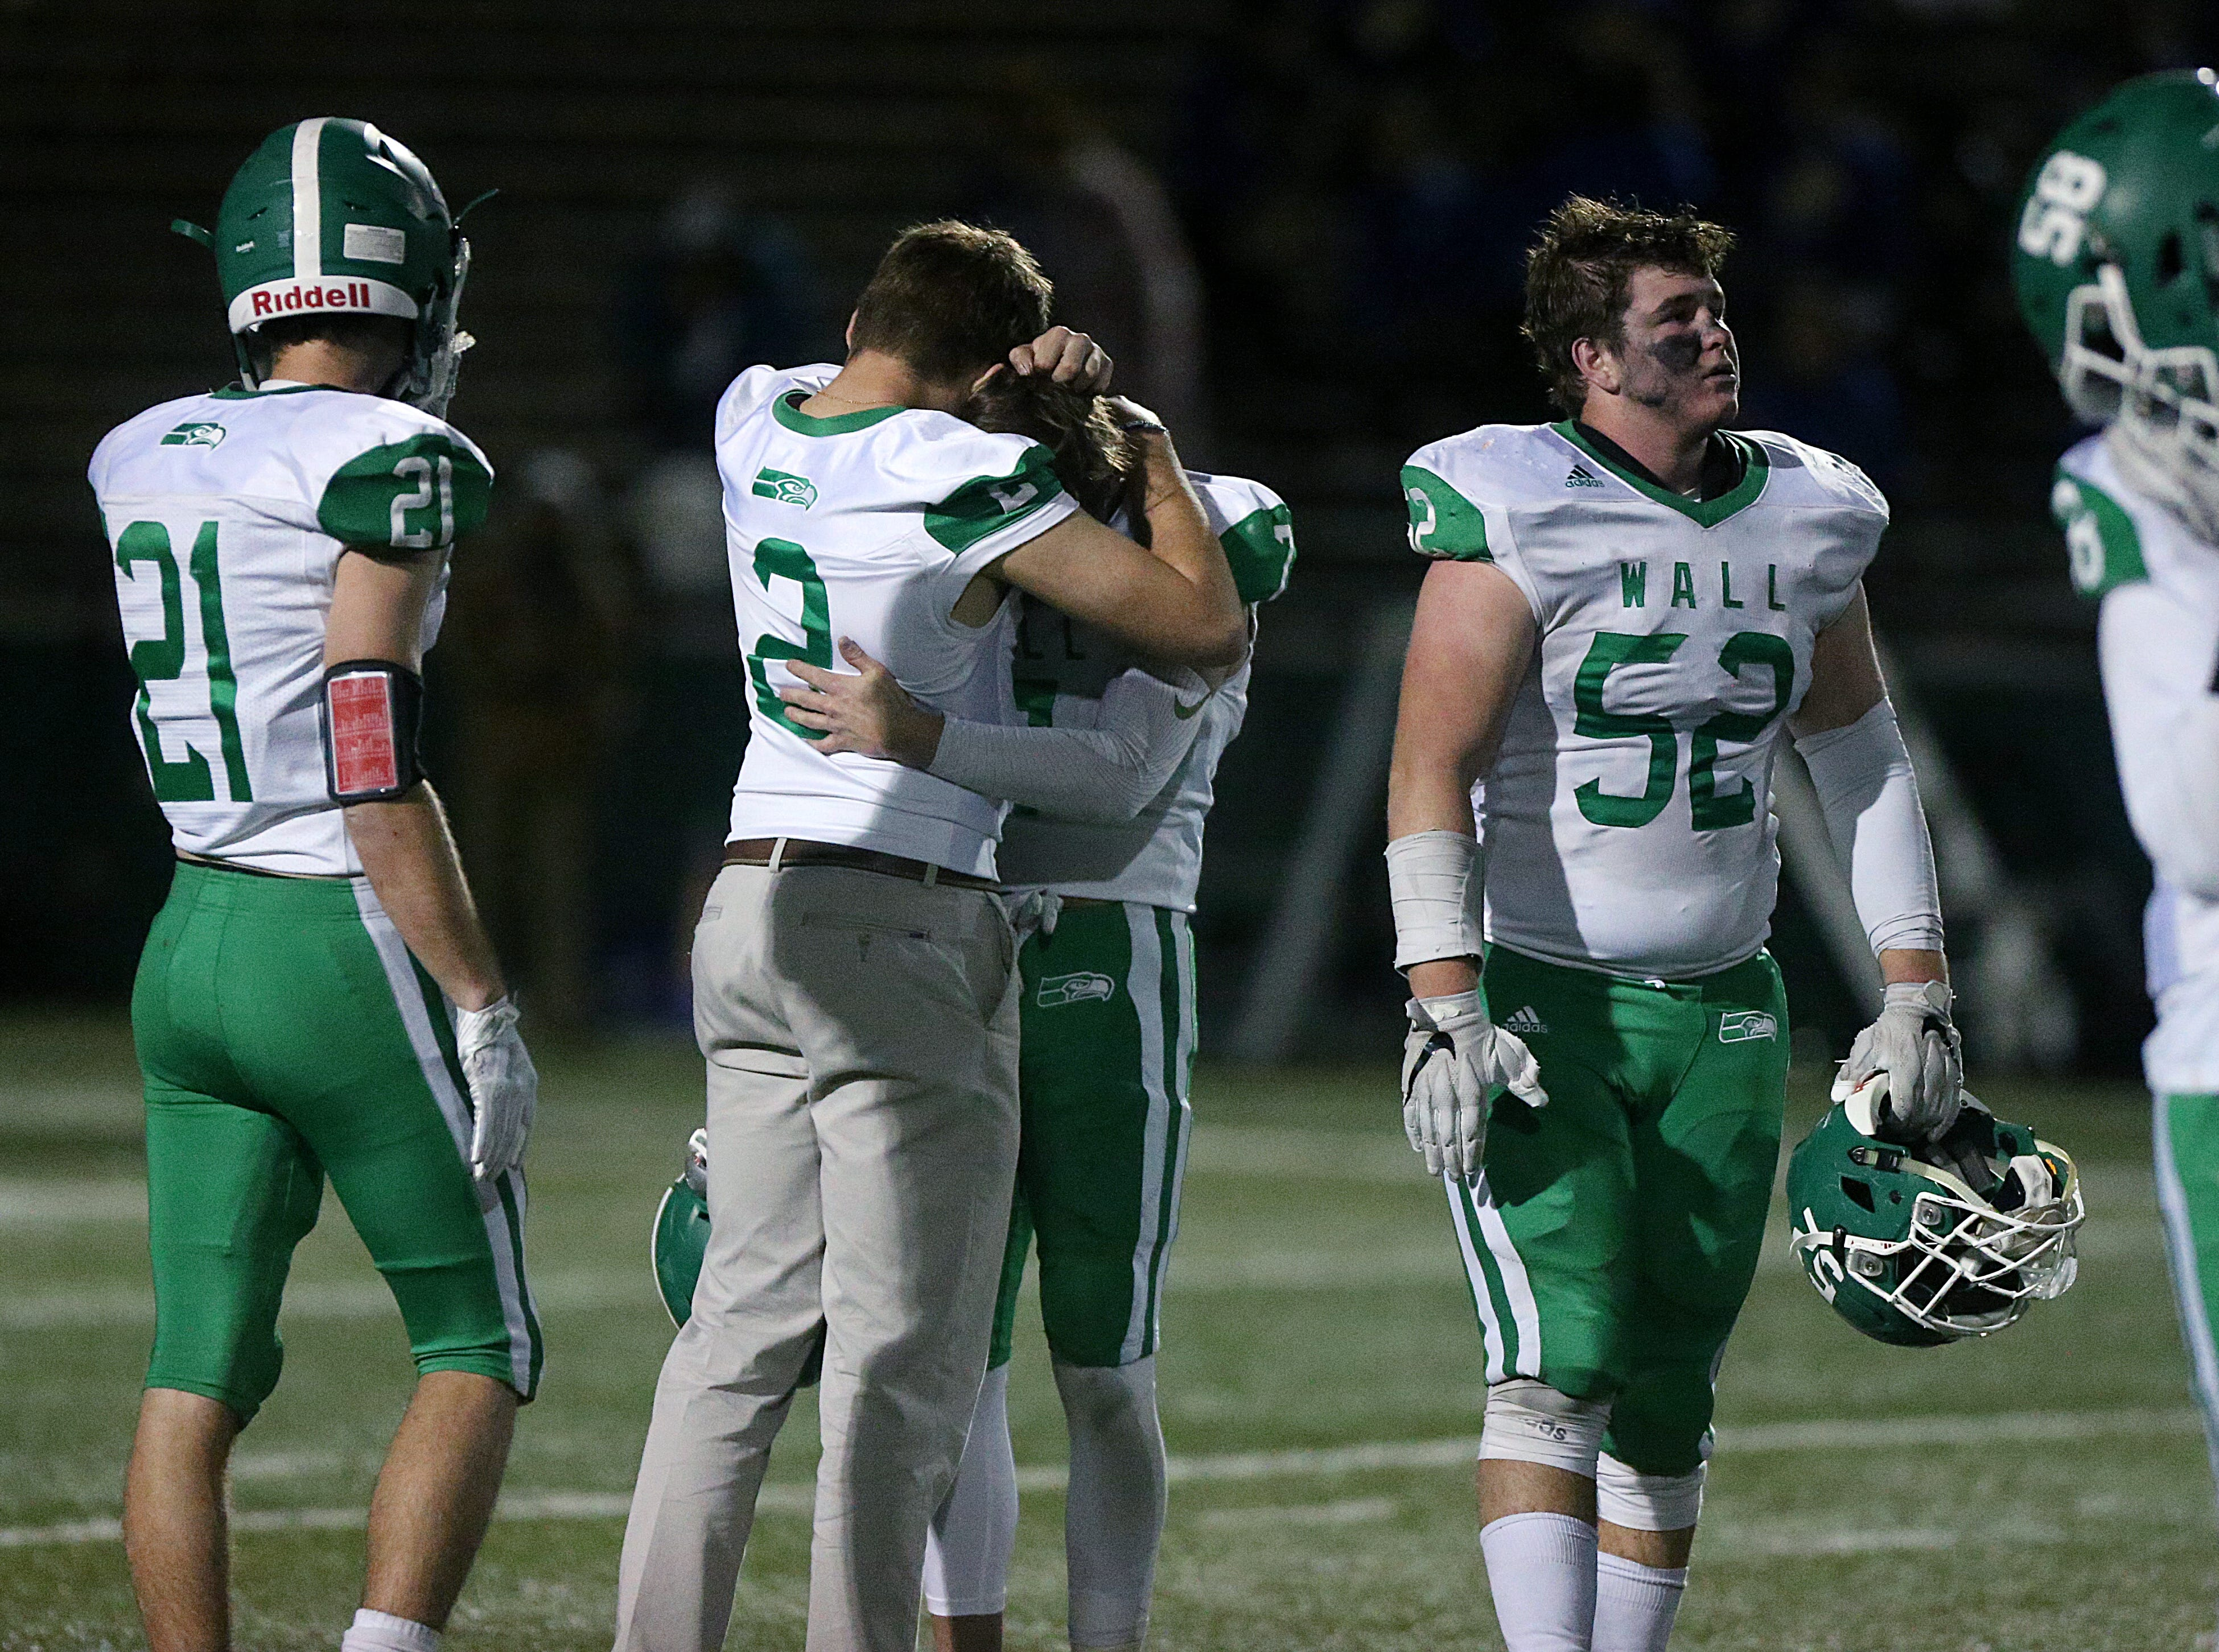 Wall players embrace after their game against the Brock Eagles Friday, Nov. 30, 2018, at Shotwell Stadium in Abilene. Wall lost 13 to 35.